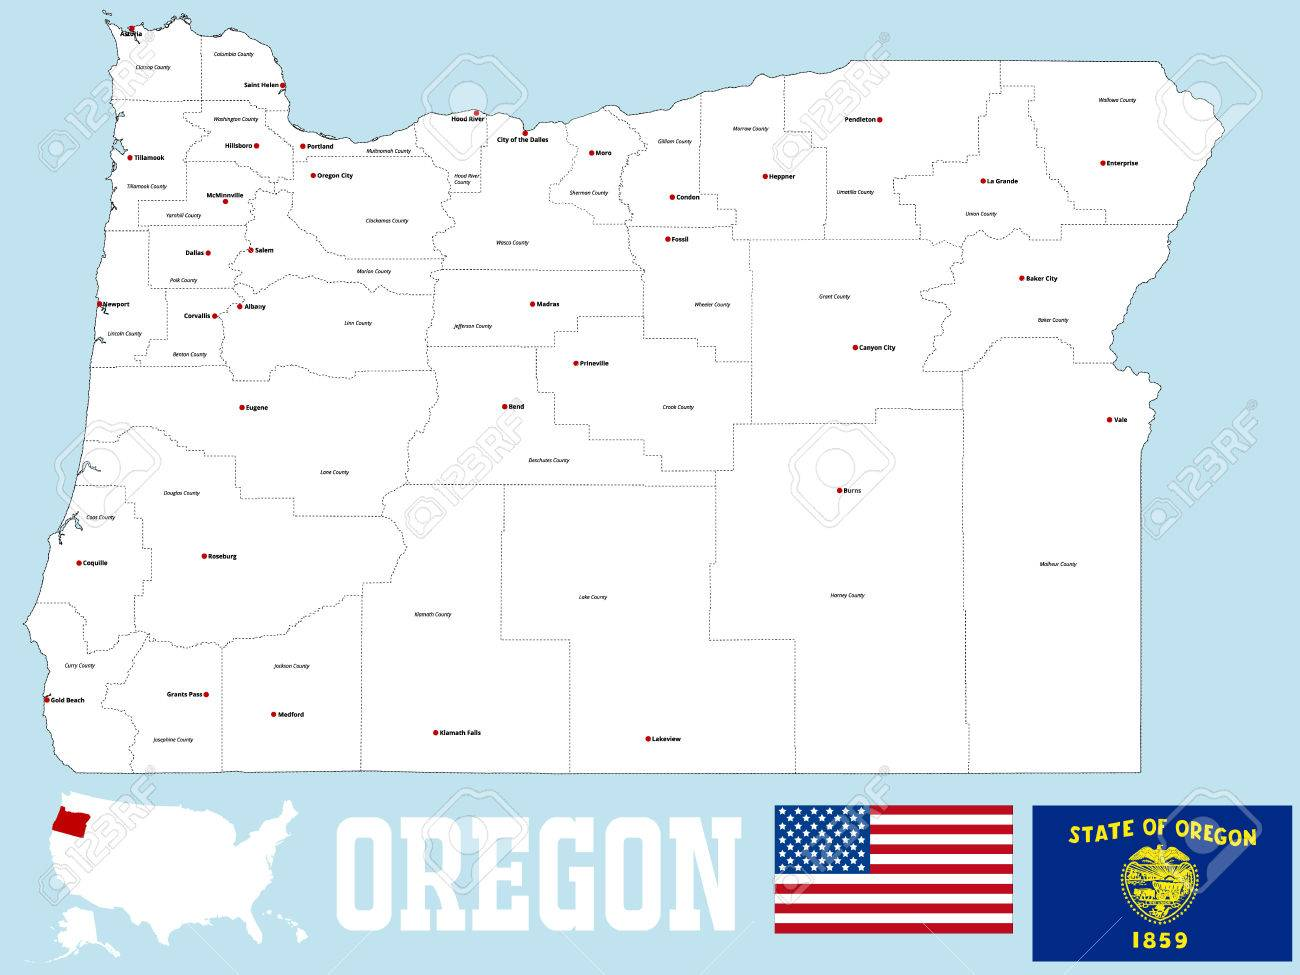 A Large And Detailed Map Of The State Of Oregon With All Counties